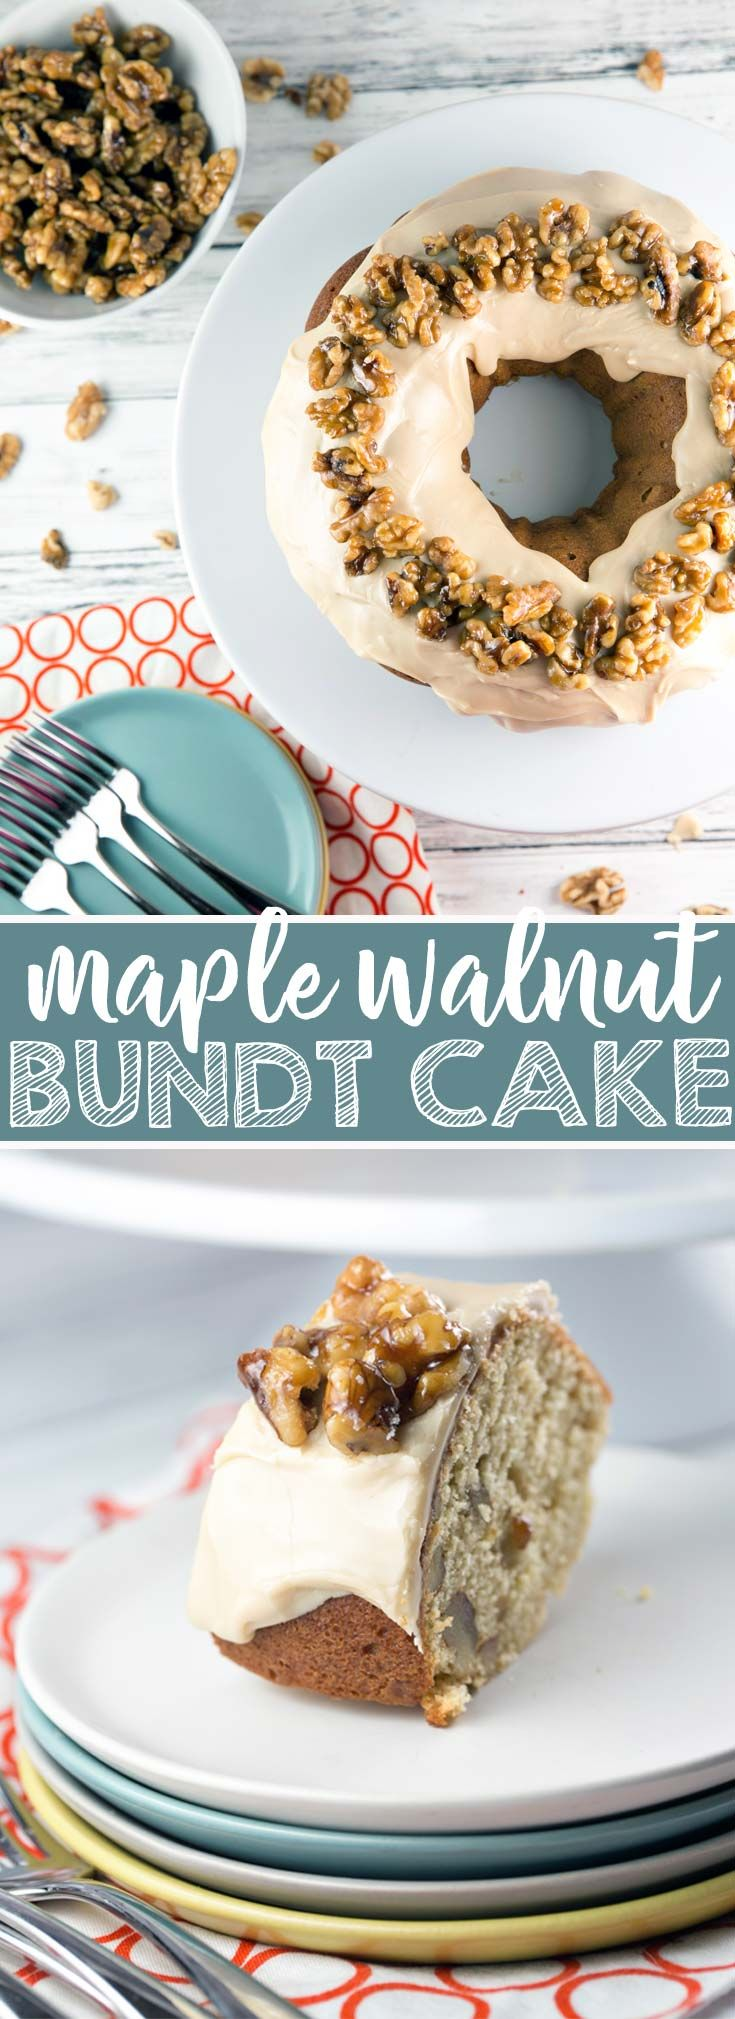 Maple Walnut Bundt Cake: vanilla bundt cake filled with maple and walnut, a thick layer of maple frosting, topped with homemade maple glazed walnut. It's the perfect fall cake! {Bunsen Burner Bakery} via @bnsnbrnrbakery